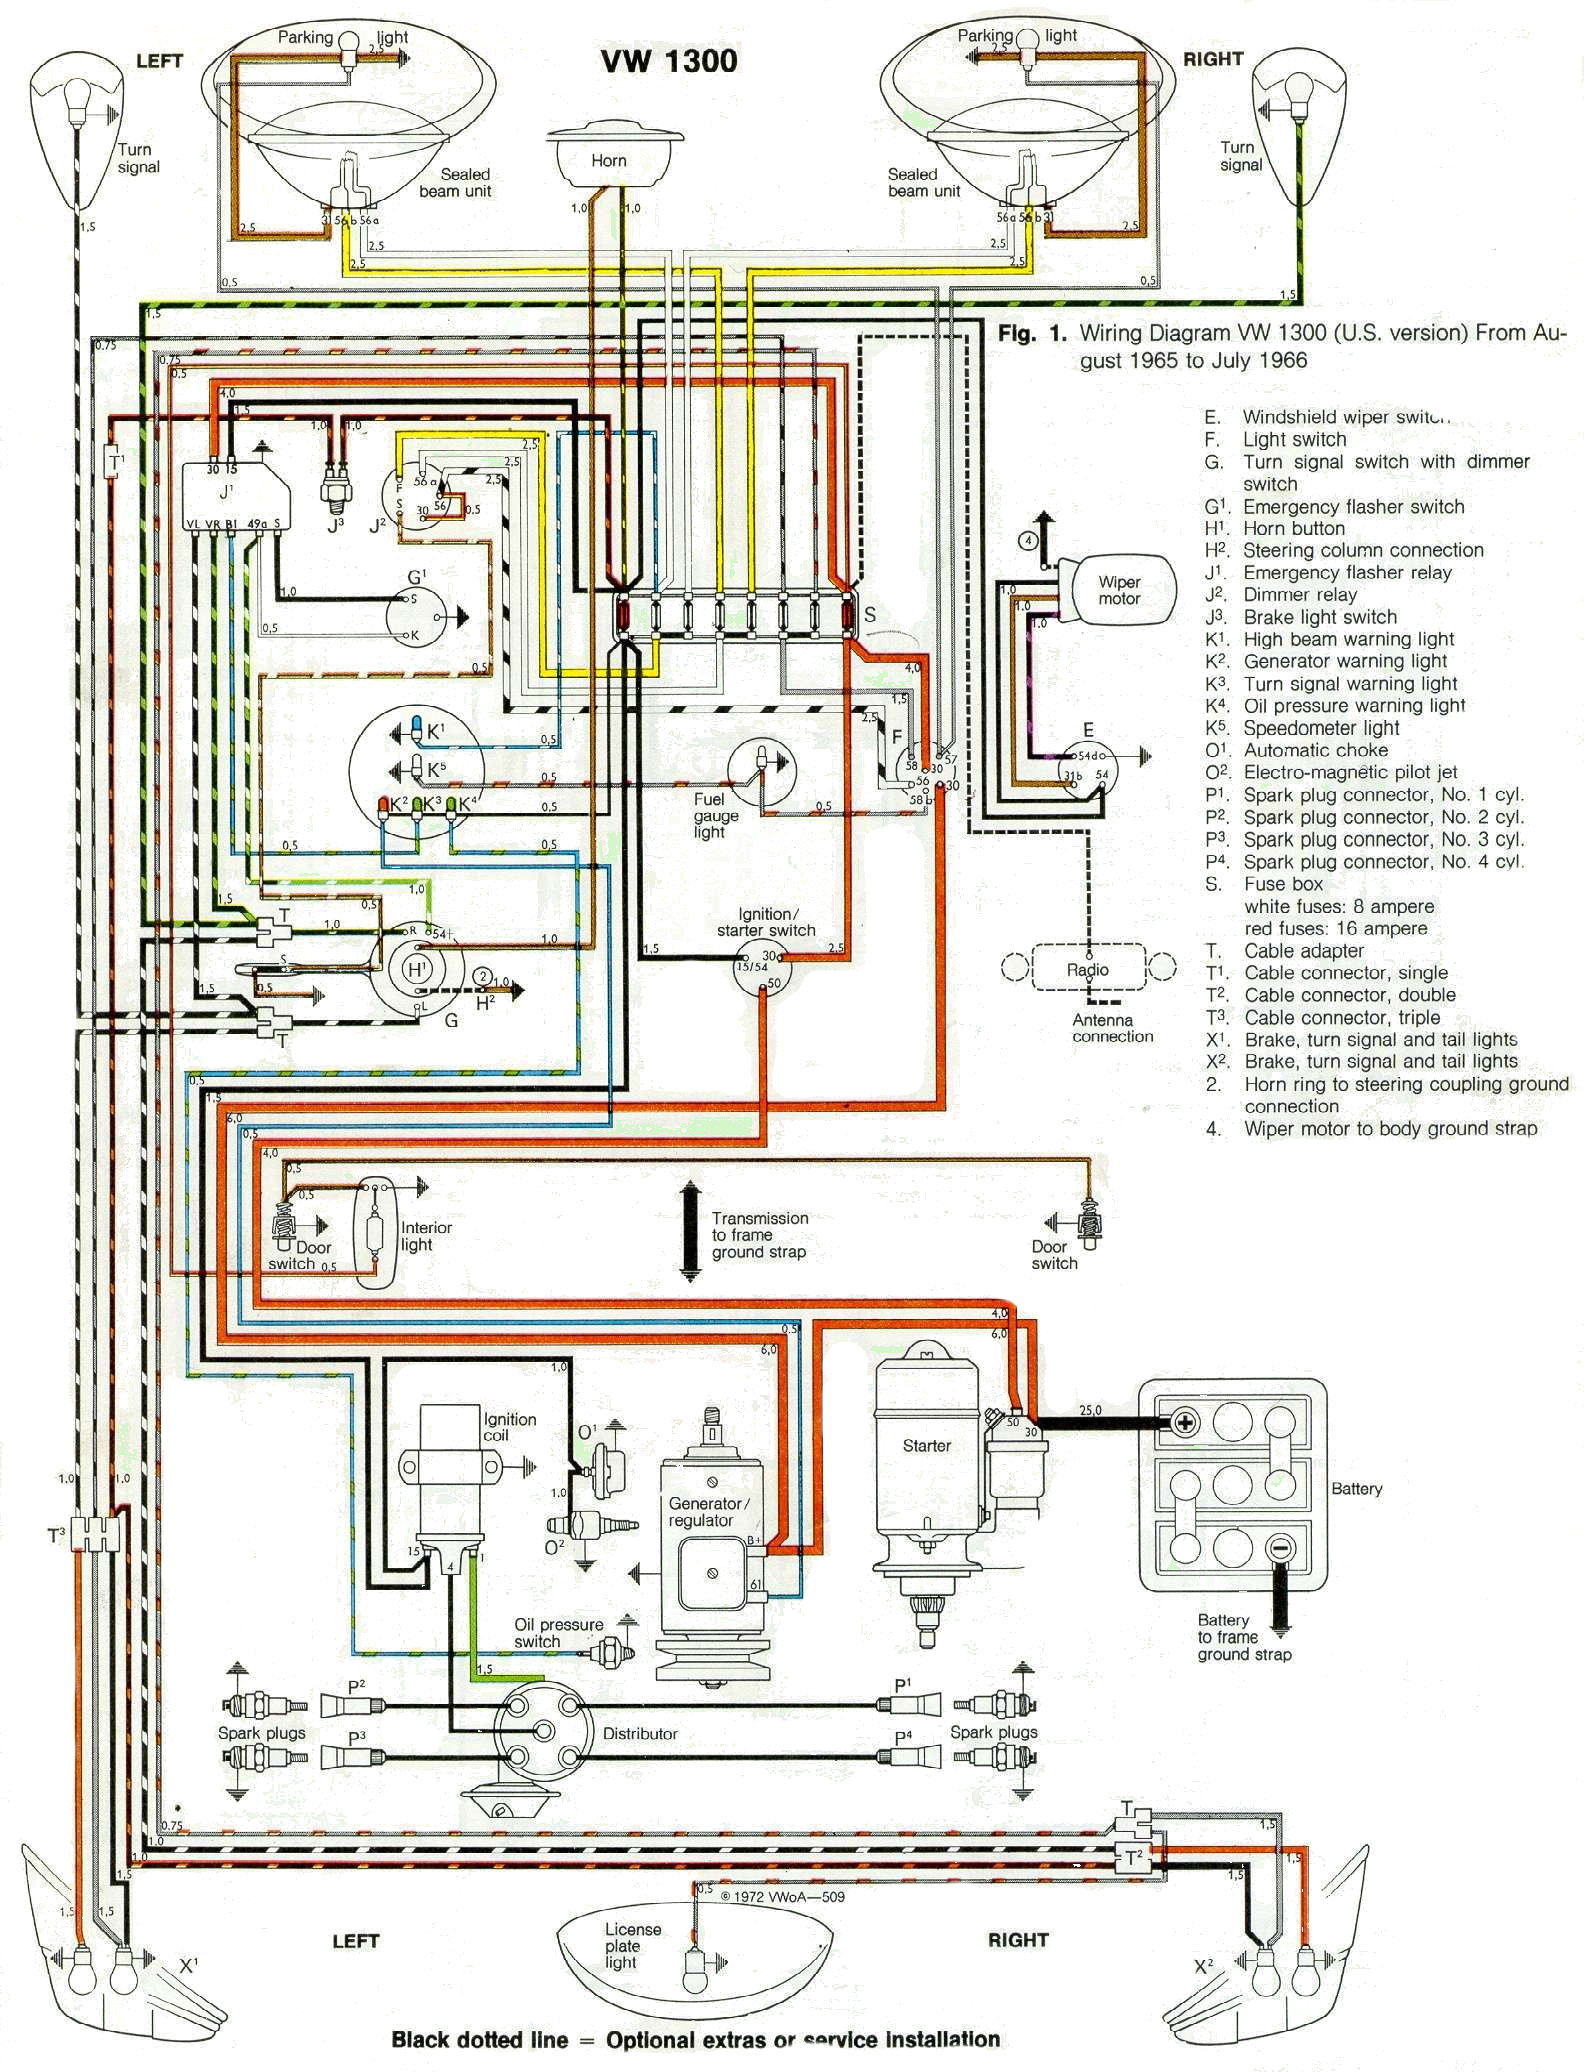 Vw Wiring Diagram Data Backup Generator 1966 Honda Diagrams